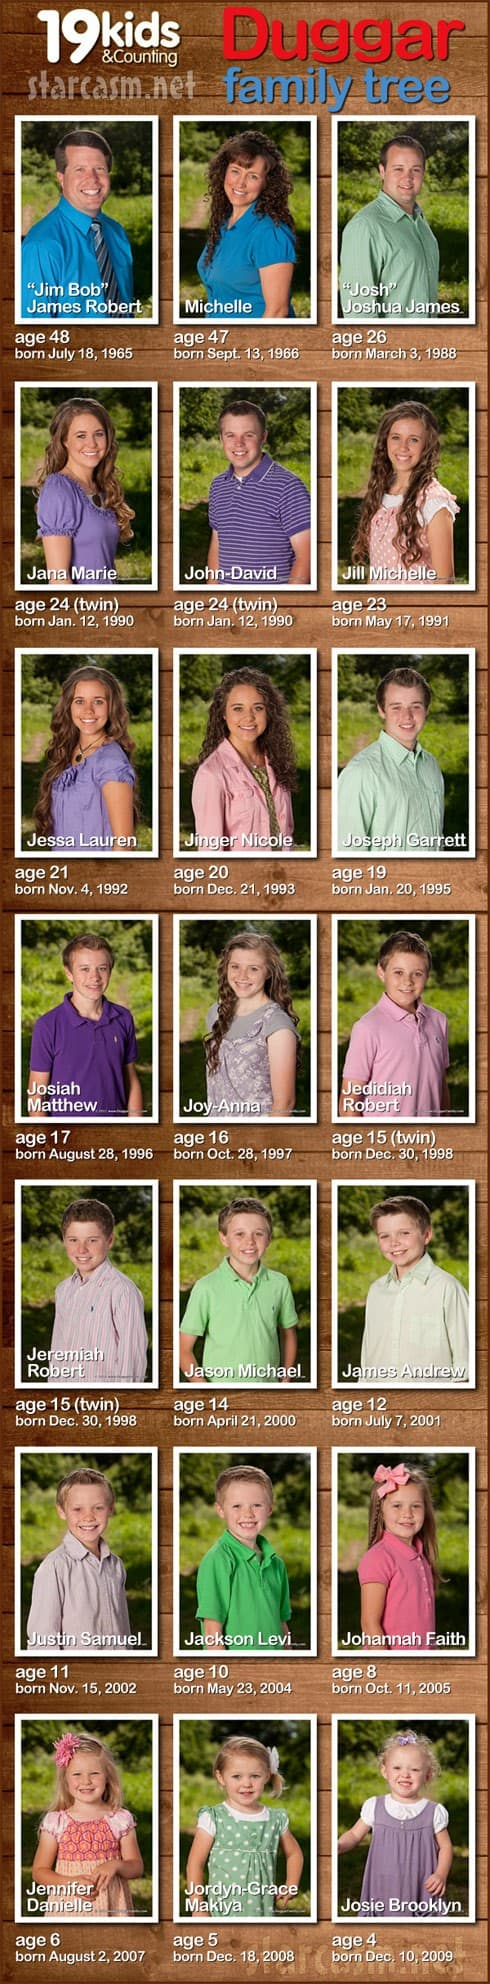 Duggar_Family_tree_19_Kids_and_Counting_490